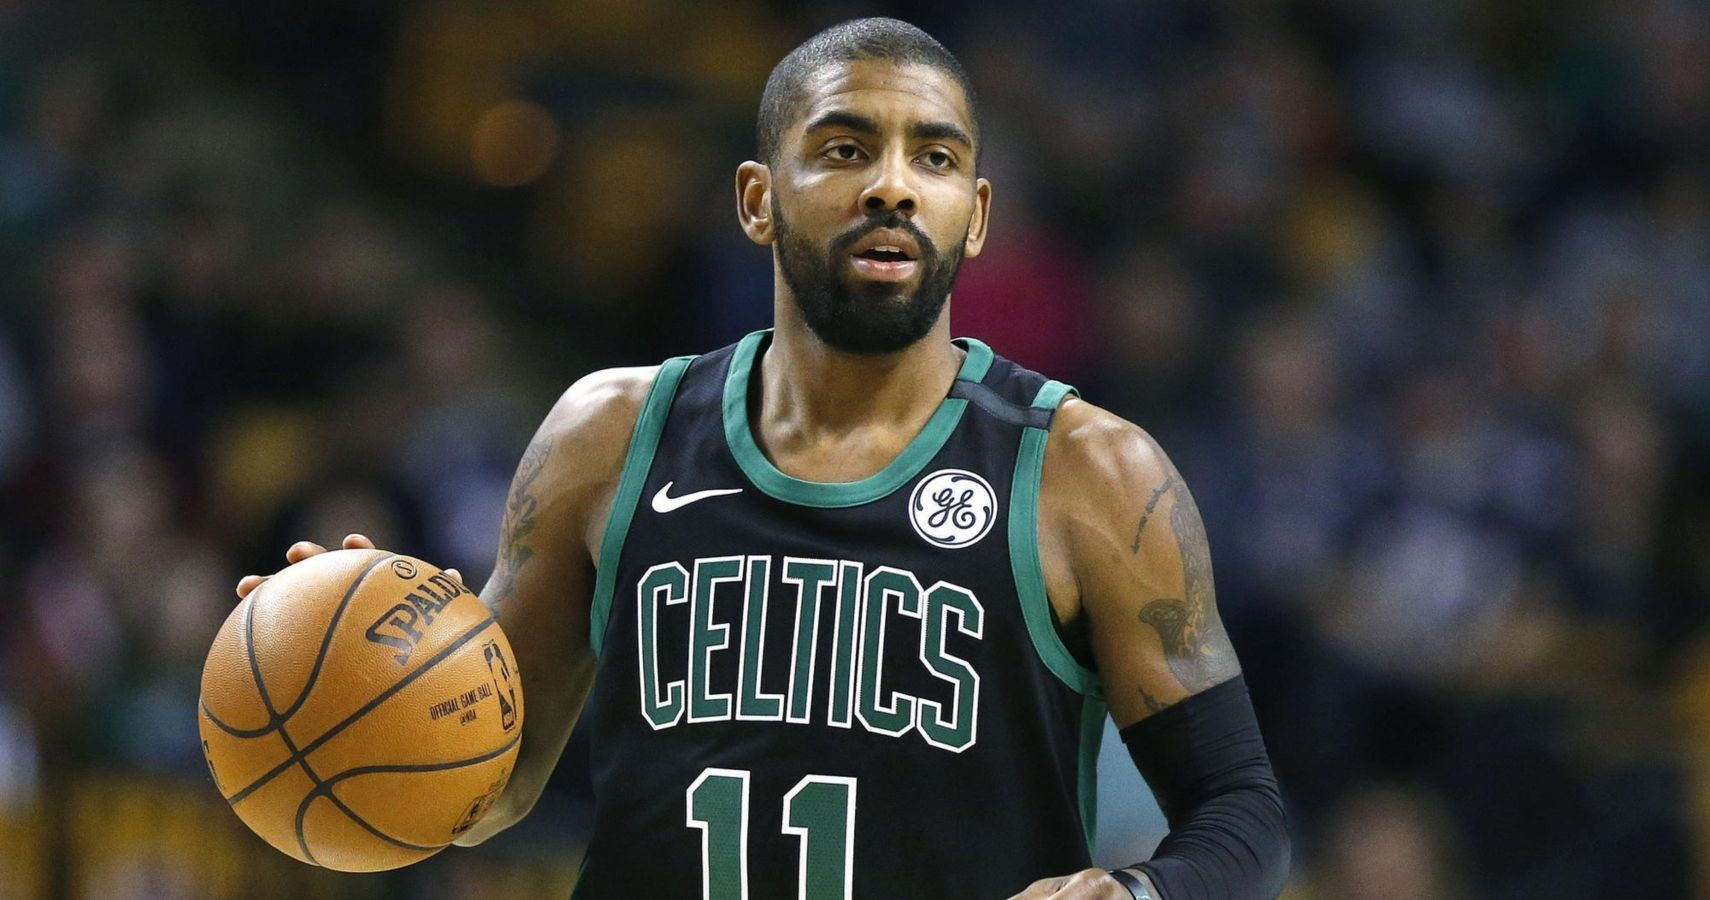 81fab8ff0b Kyrie Irving 'Argues' With Kid At Boston Children's Hospital In Adorable  Video